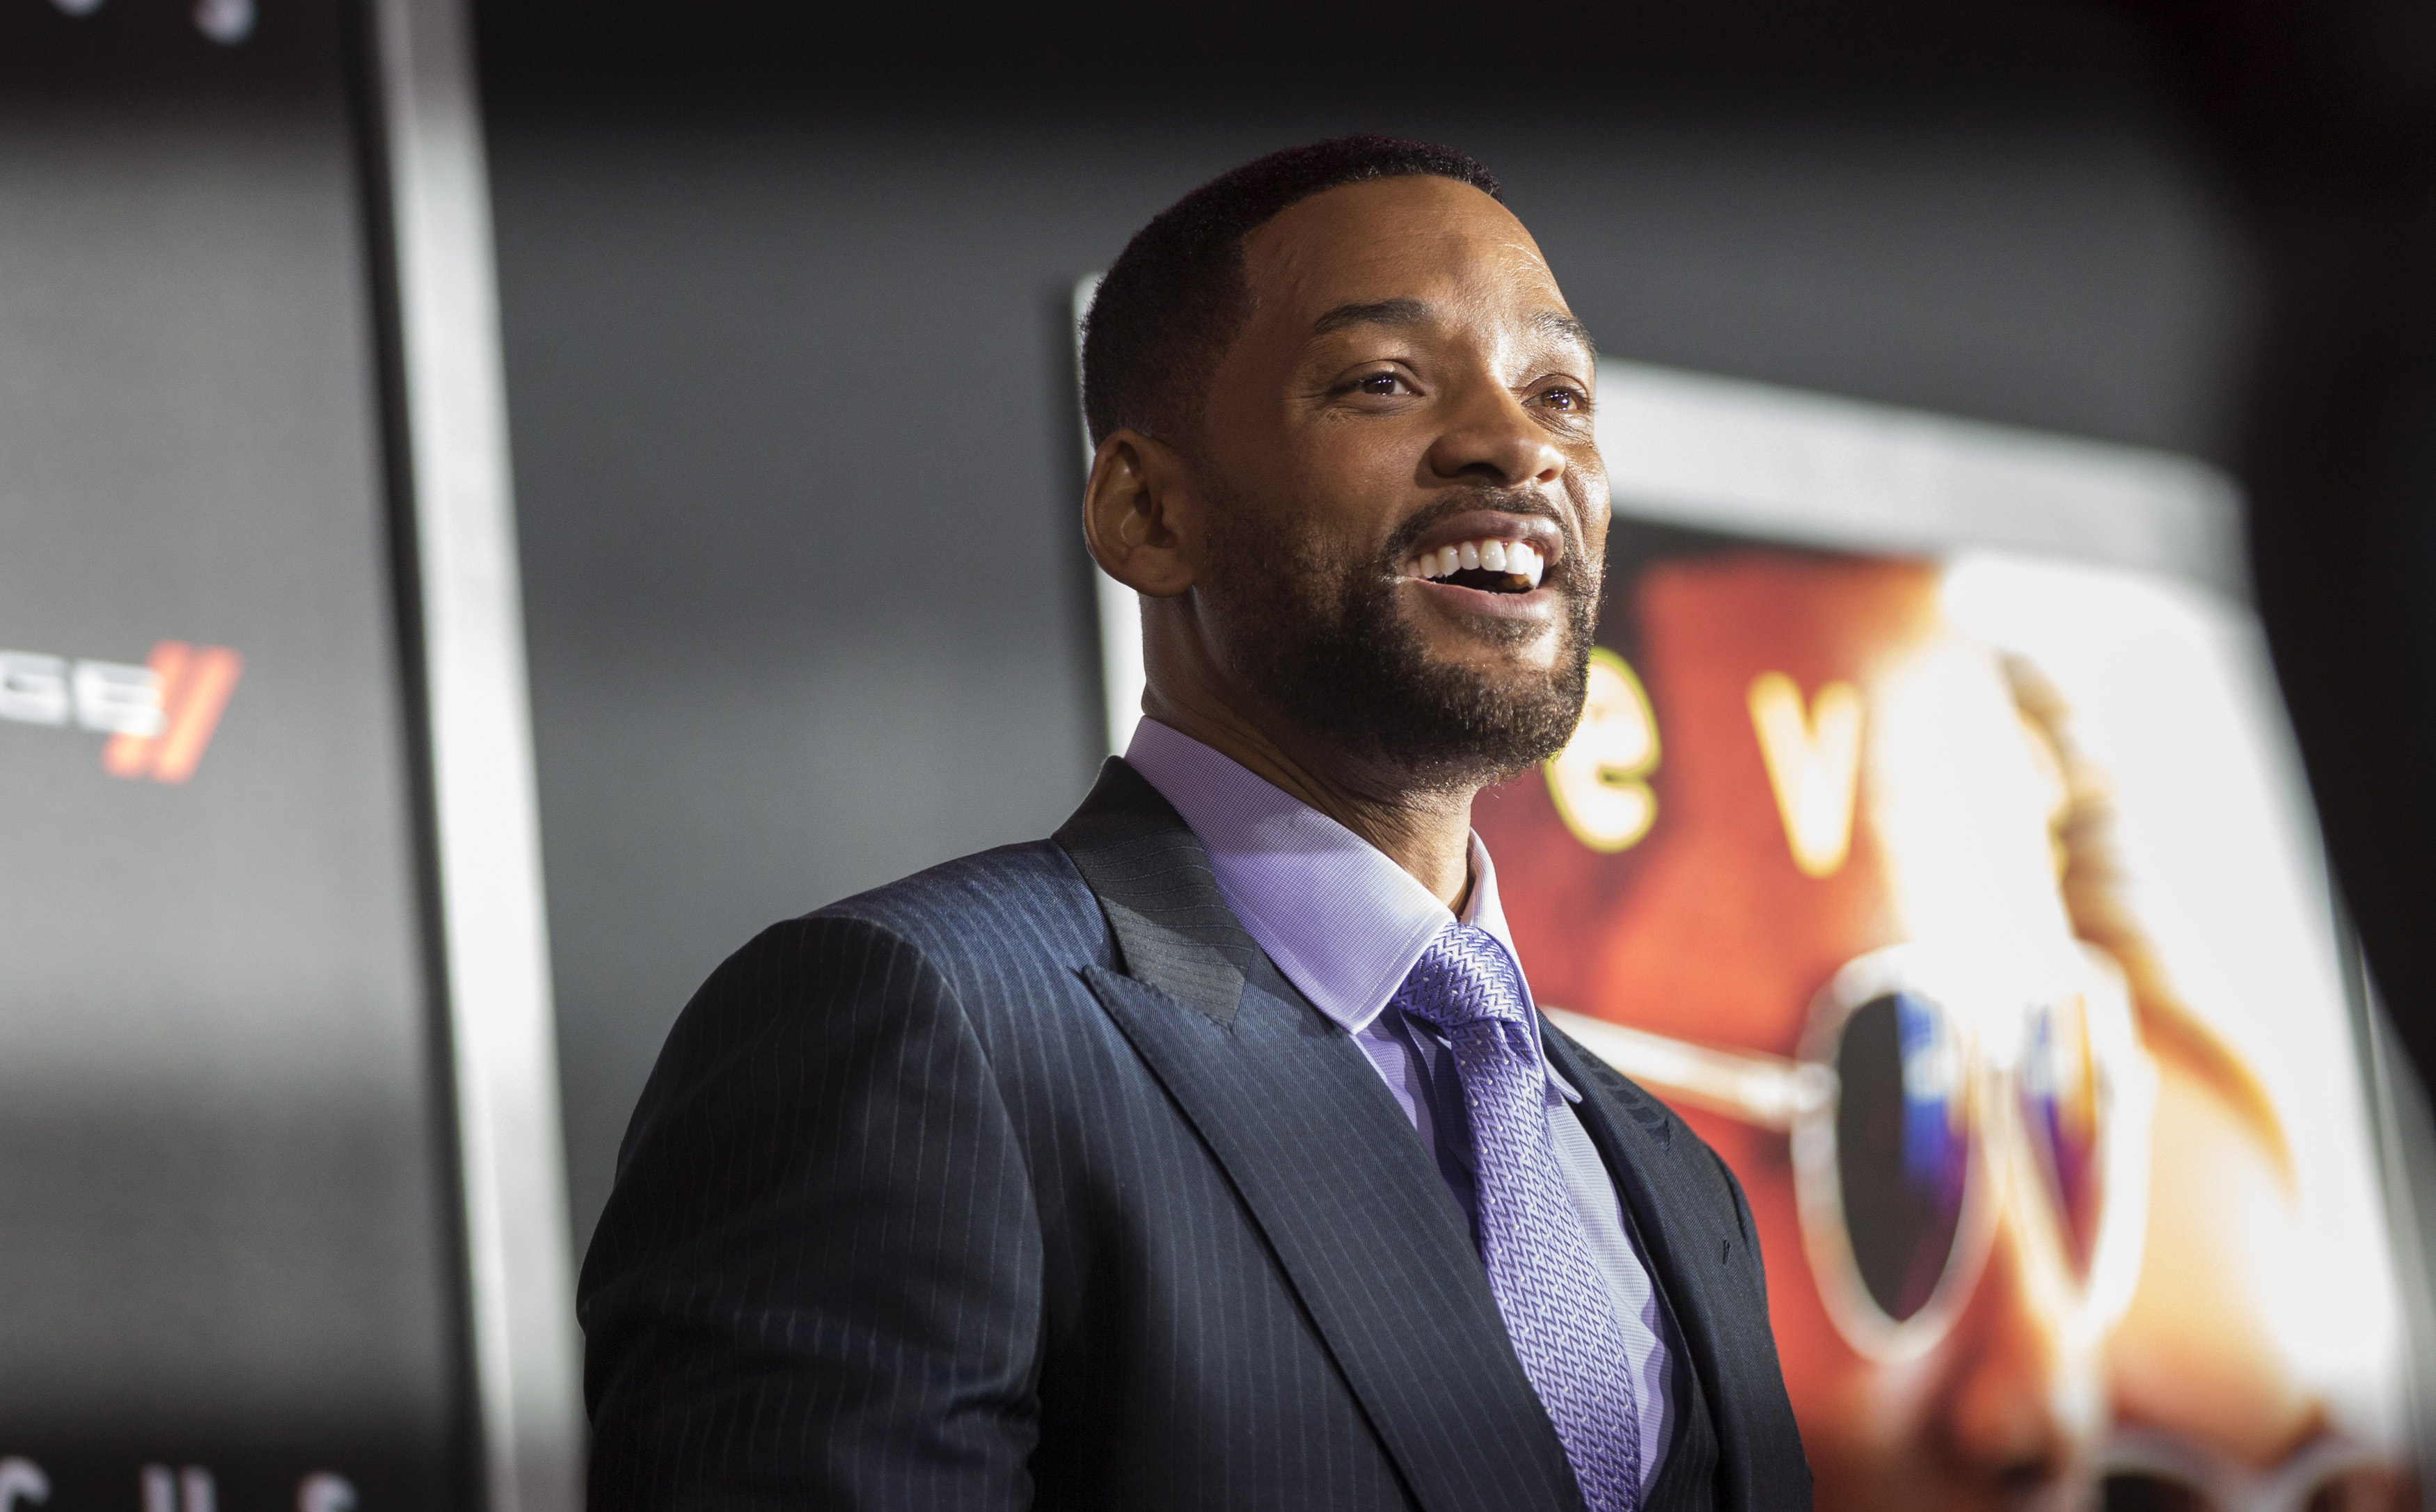 Cast member Will Smith poses at the premiere of  Focus  at the TCL Chinese theatre in Hollywood, California February 24, 2015.